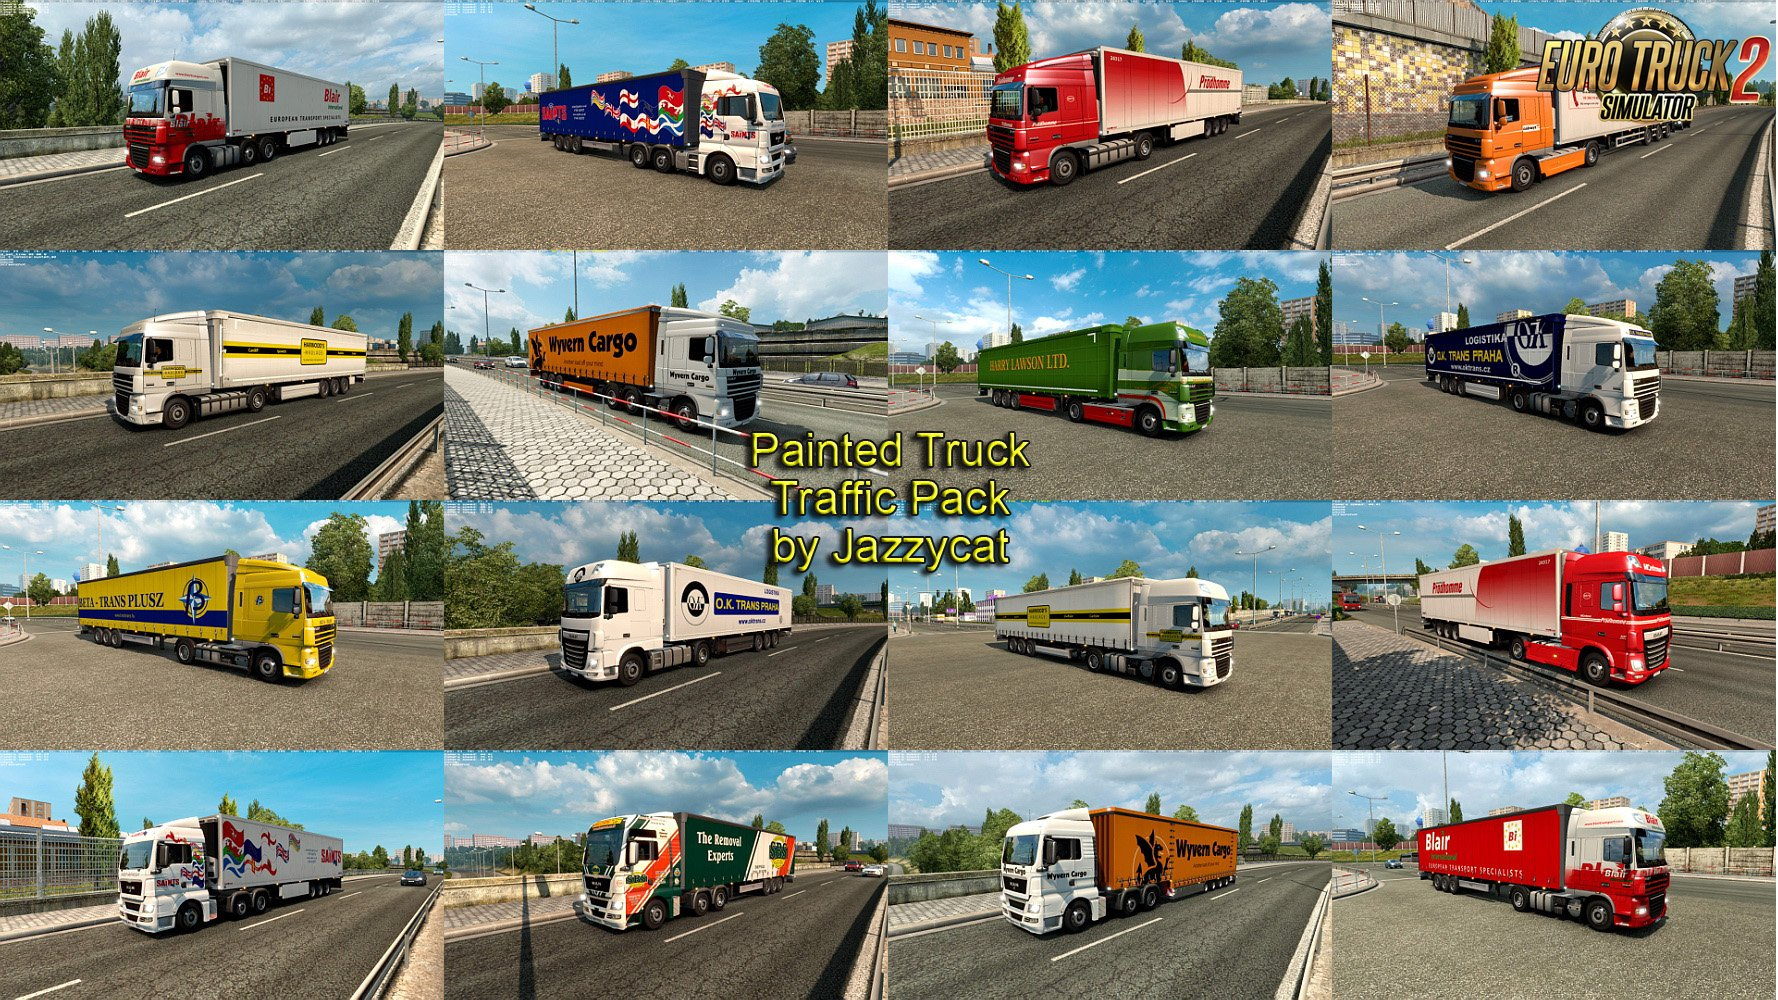 Painted Truck Traffic Pack v3.1 by Jazzycat